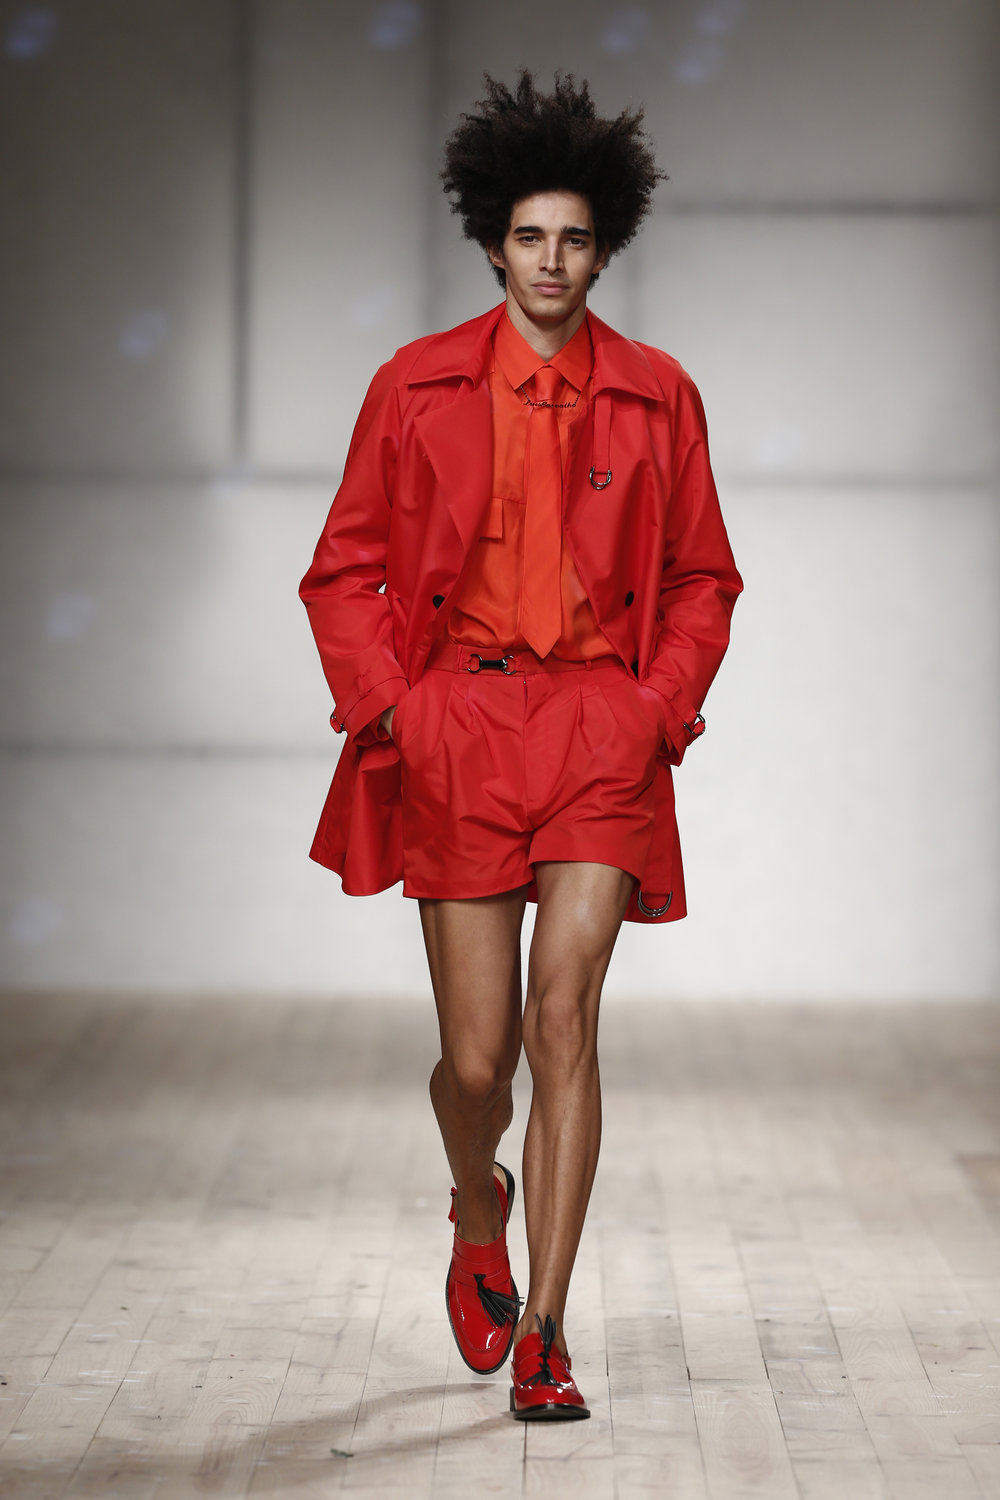 red Trench Coat  One available size 38 Original Price 594€ | Discount Price 355€ Ref. LCss17h15